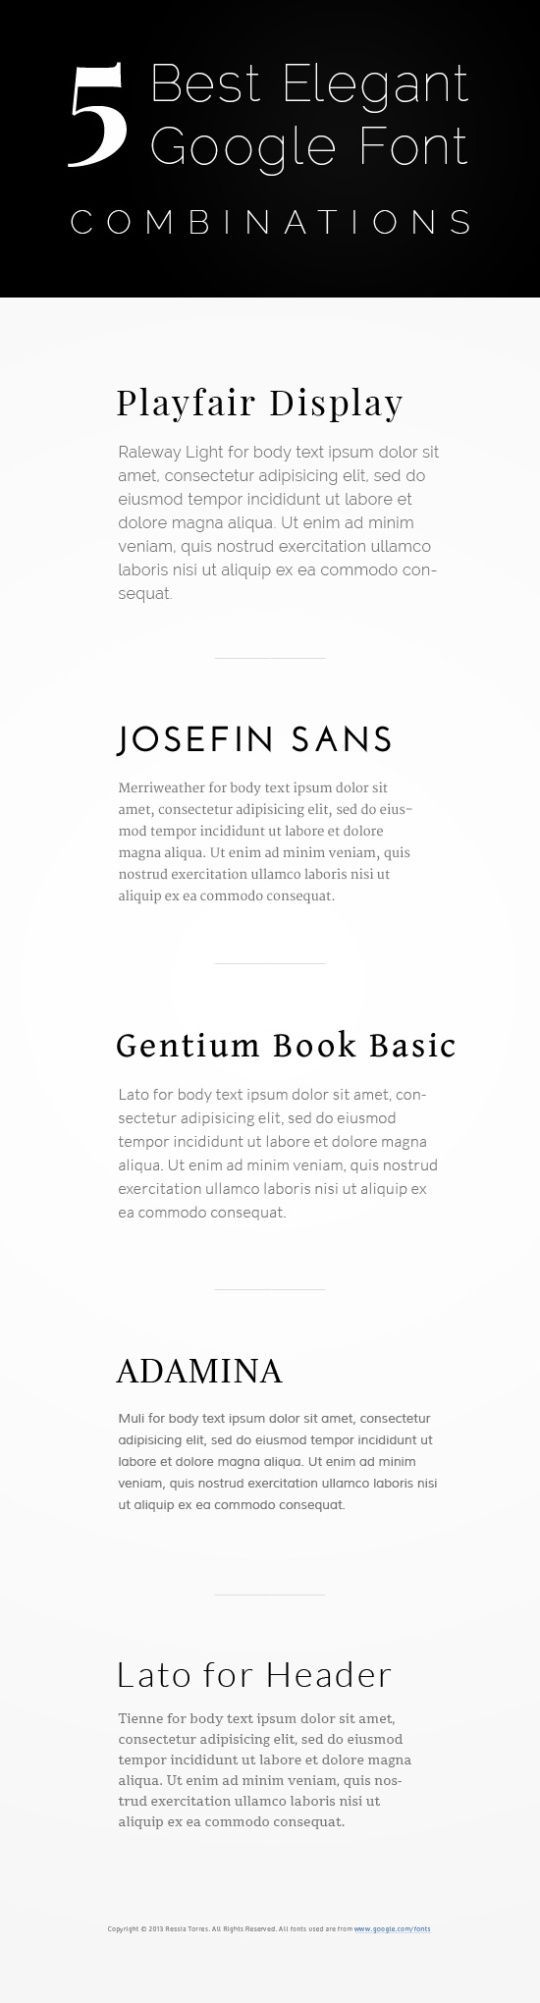 Here's a round up of 5 best elegant-looking combinations of Googlefonts that look good together. These combinations convey elegance, luxury, classic-feel, and seriousness that is great for h…